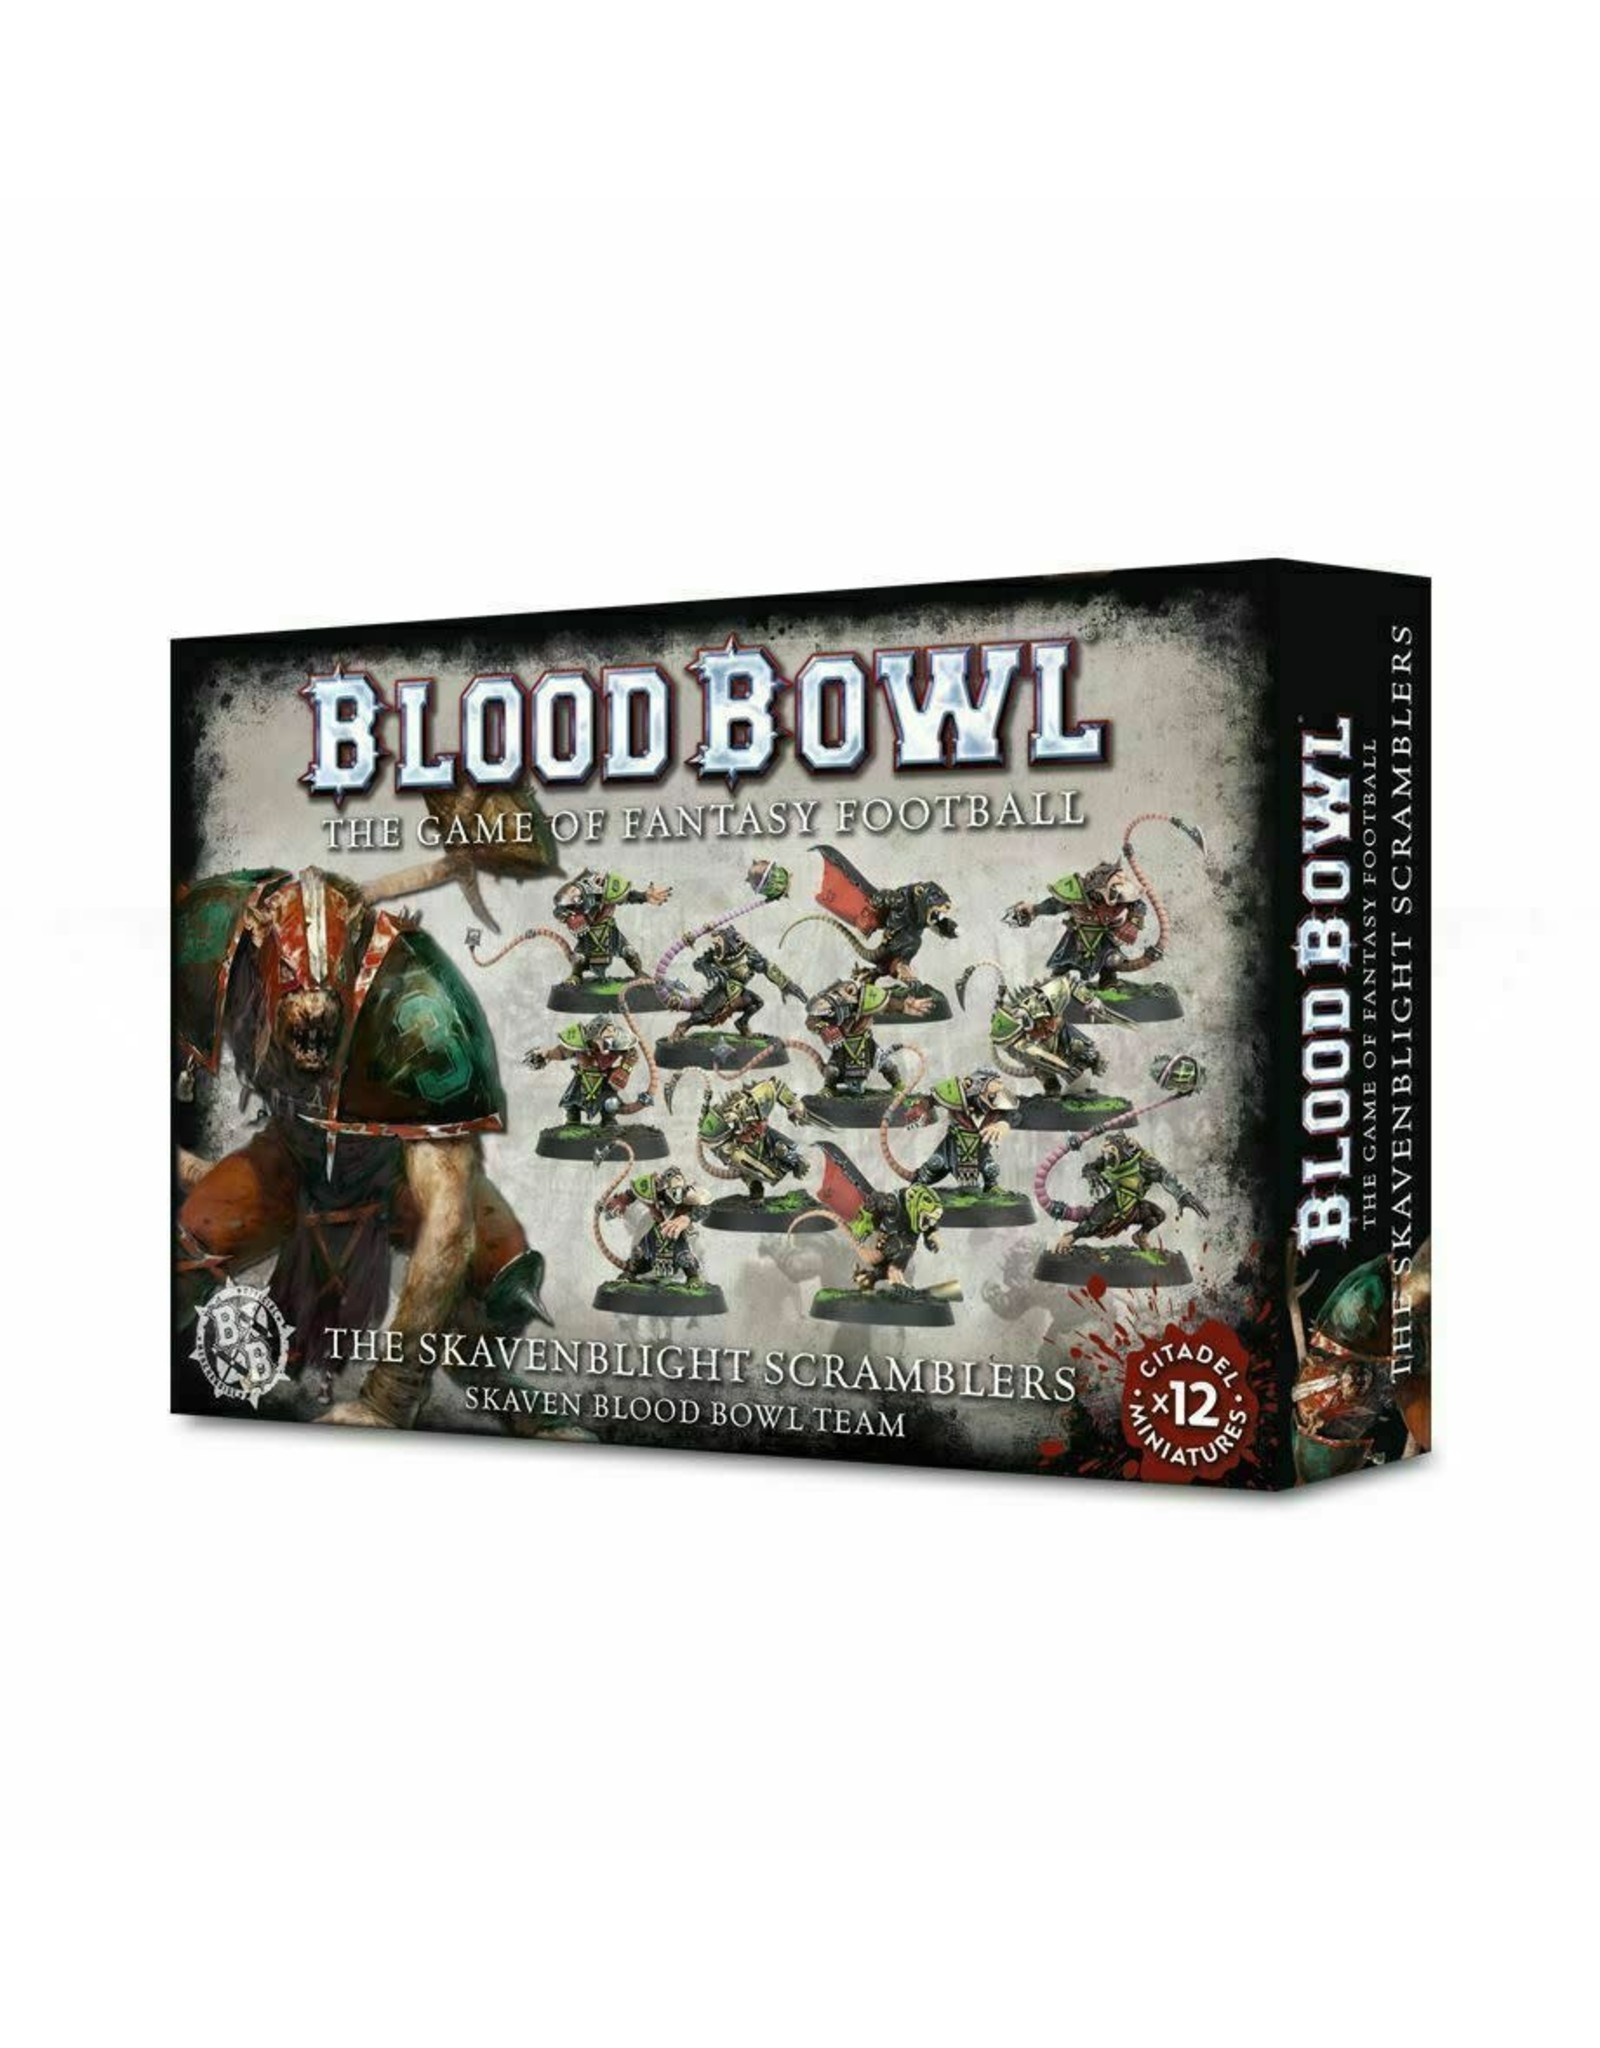 Blood Bowl: The Skavenblight Scramb